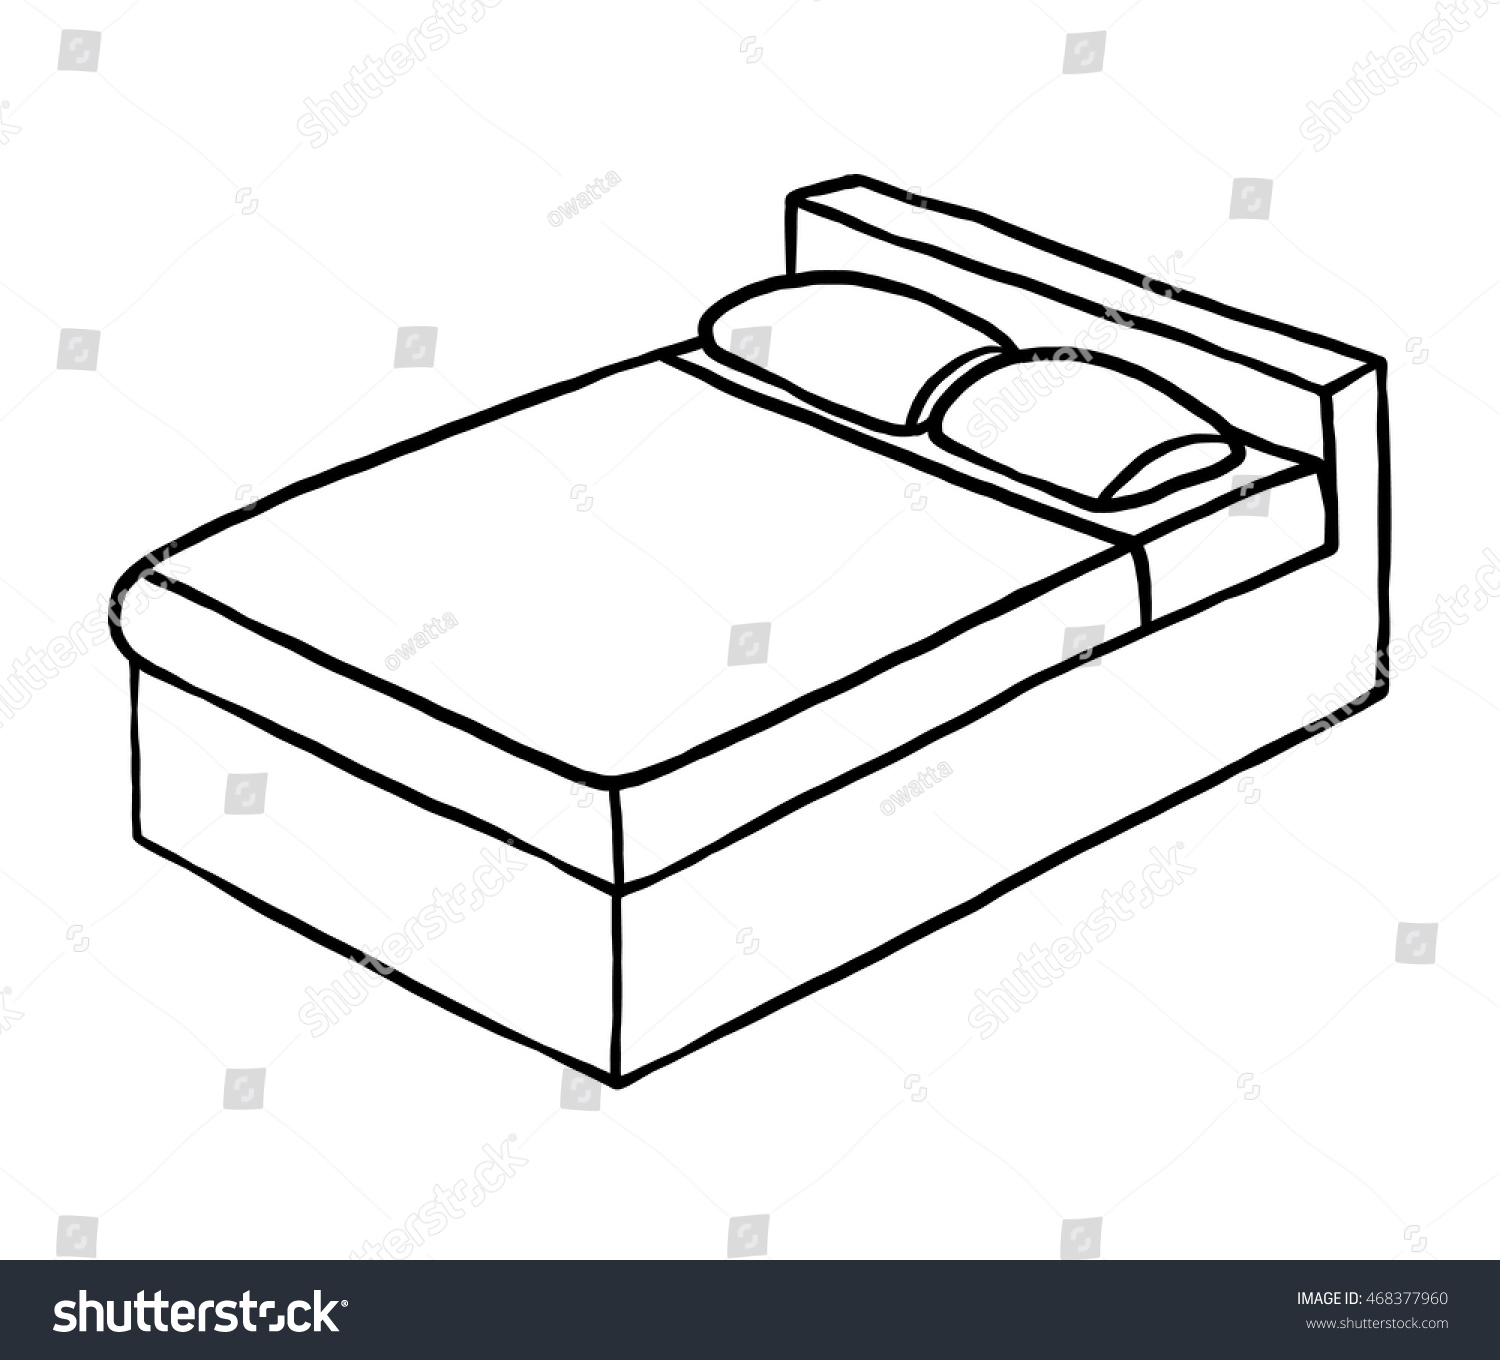 Double Bed Cartoon Vector Illustration Black Stock Vector ...